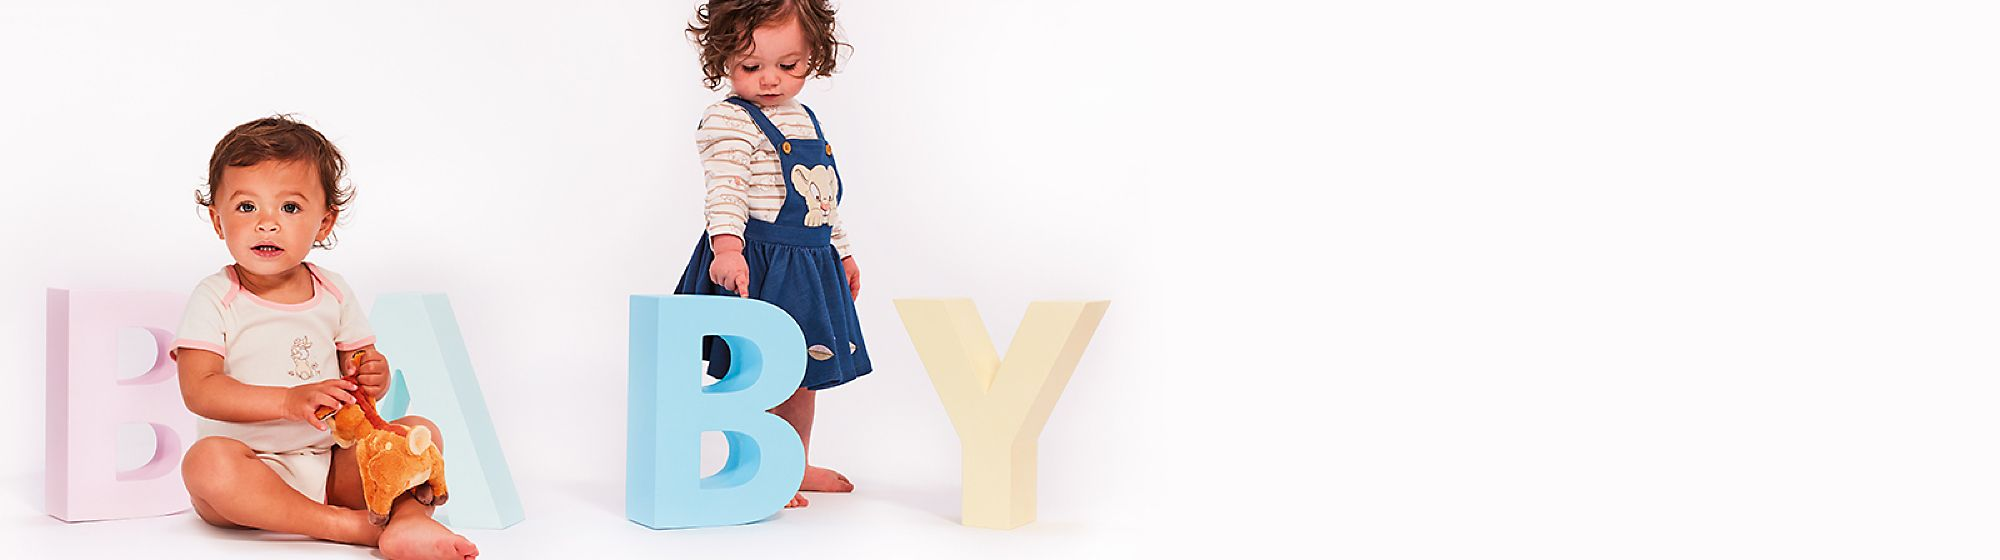 Baby Find the perfect gift for new arrivals including baby outfits,  costumes and toys featuring Bambi, Dumbo, Simba and more. DISCOVER MORE